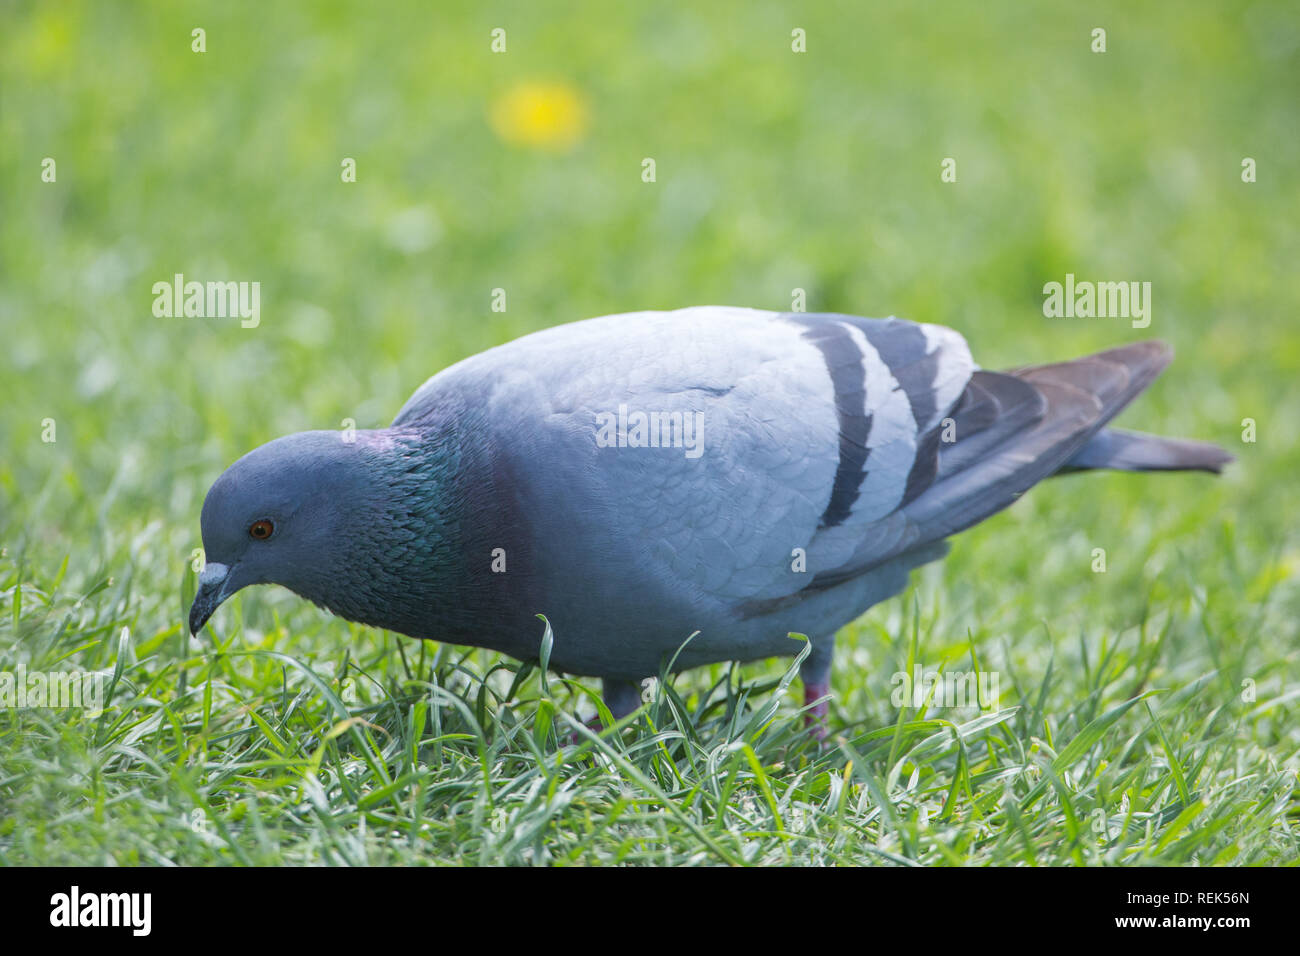 Rock Dove (Columba livia). On the lawn of a private house garden. Isle of Iona, Inner Hebrides, West Coast, Scotland. The wild ancestor species ​of domestic breeds of pigeon. - Stock Image